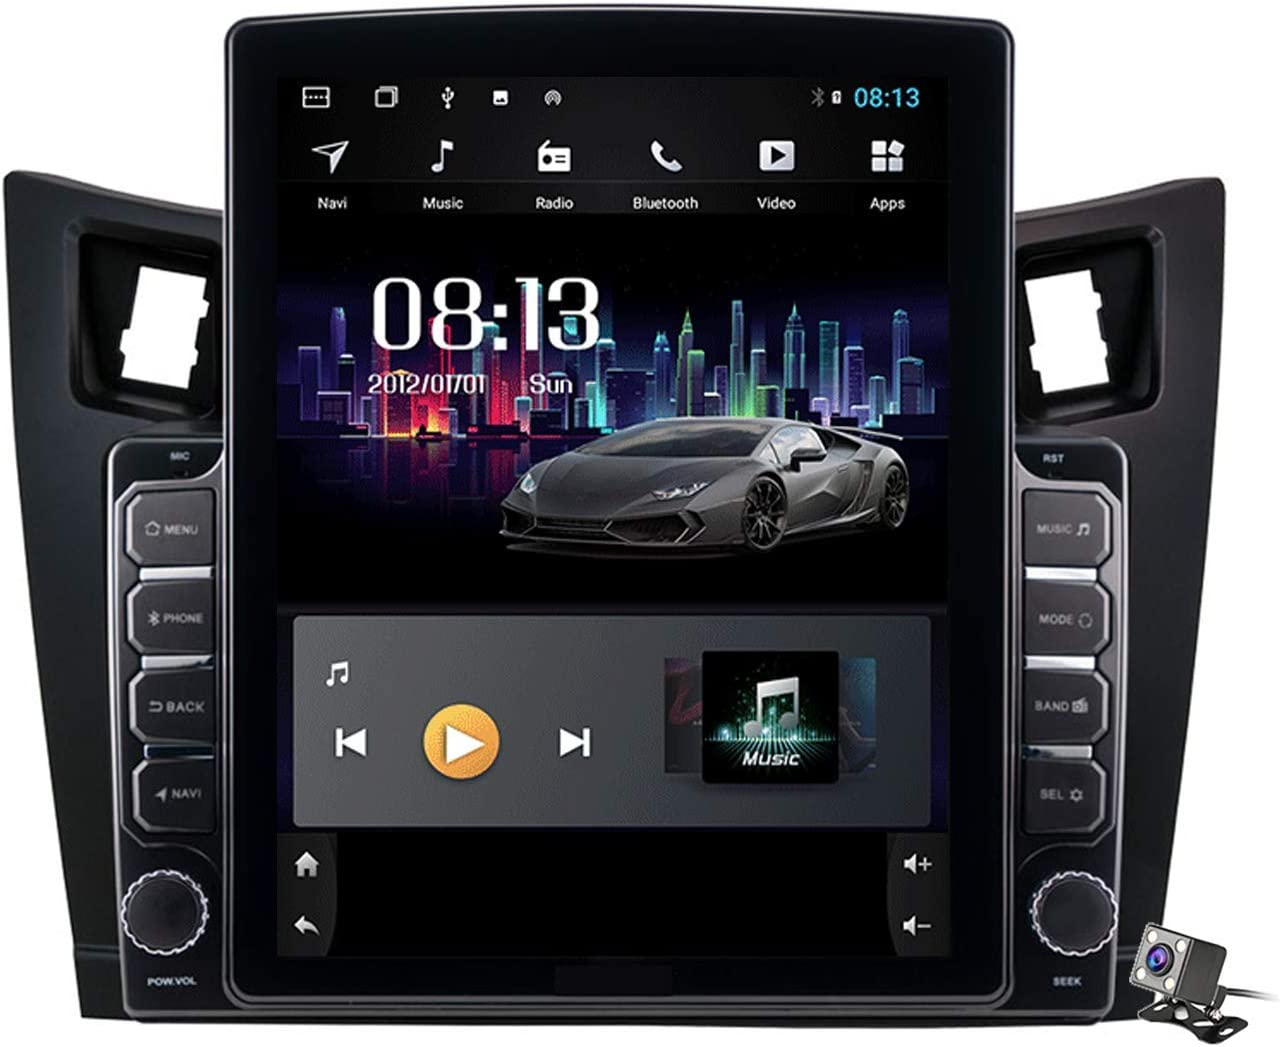 HBWZ Android 9.0 Car Stereo Radio Yaris XP90 Toyota 2005-20 for Over item handling Seattle Mall